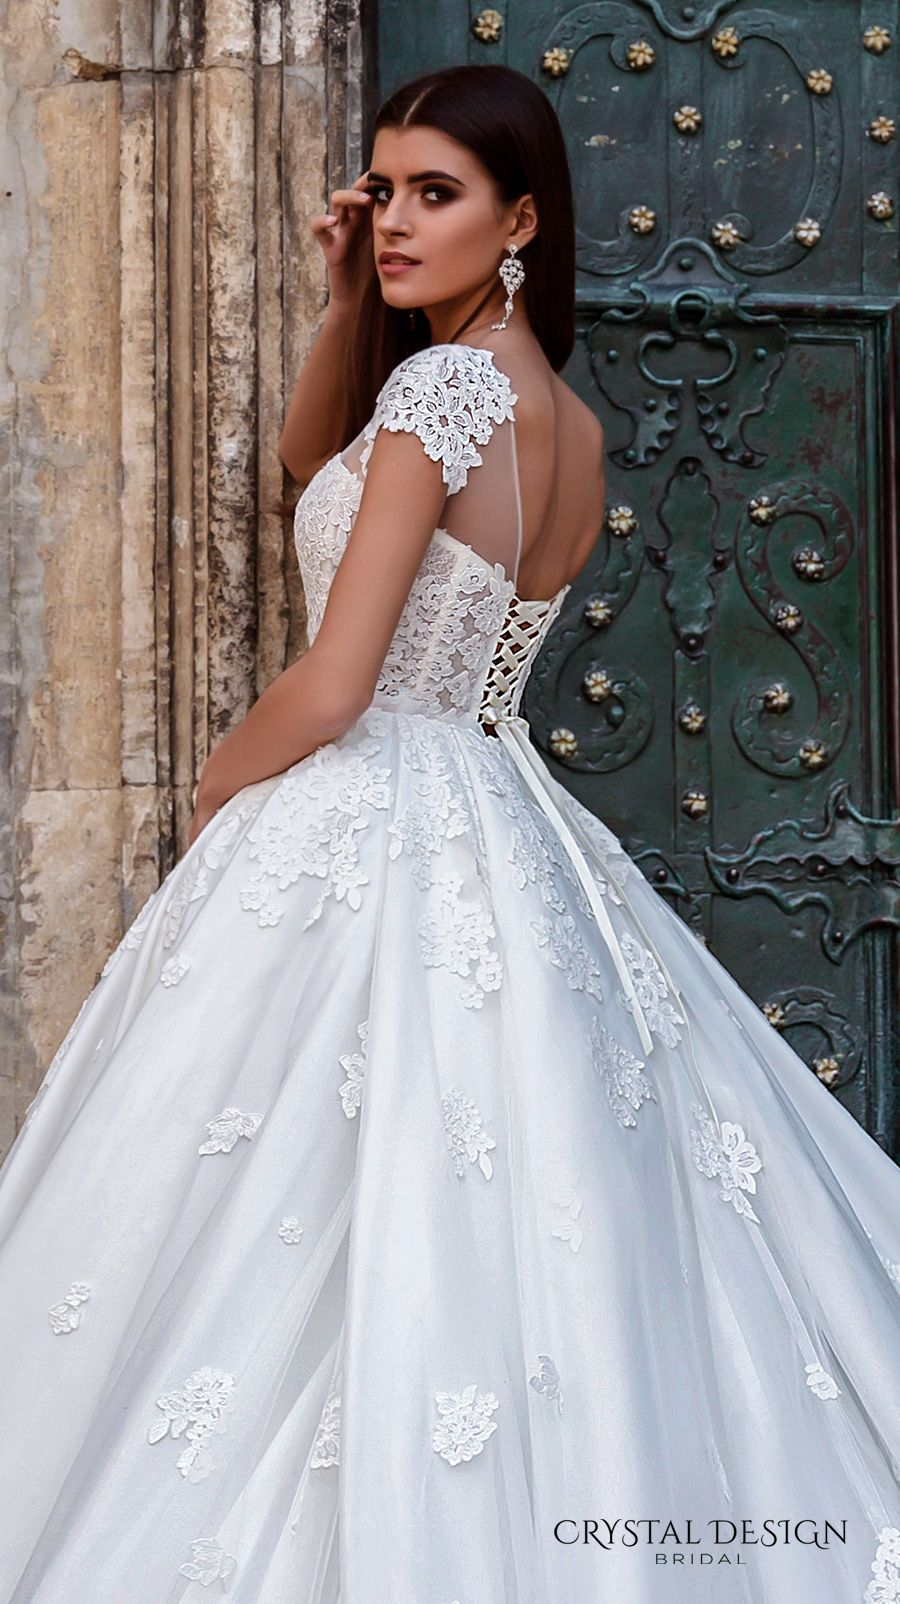 crystal wedding dresses Crystal Design Wedding Dresses